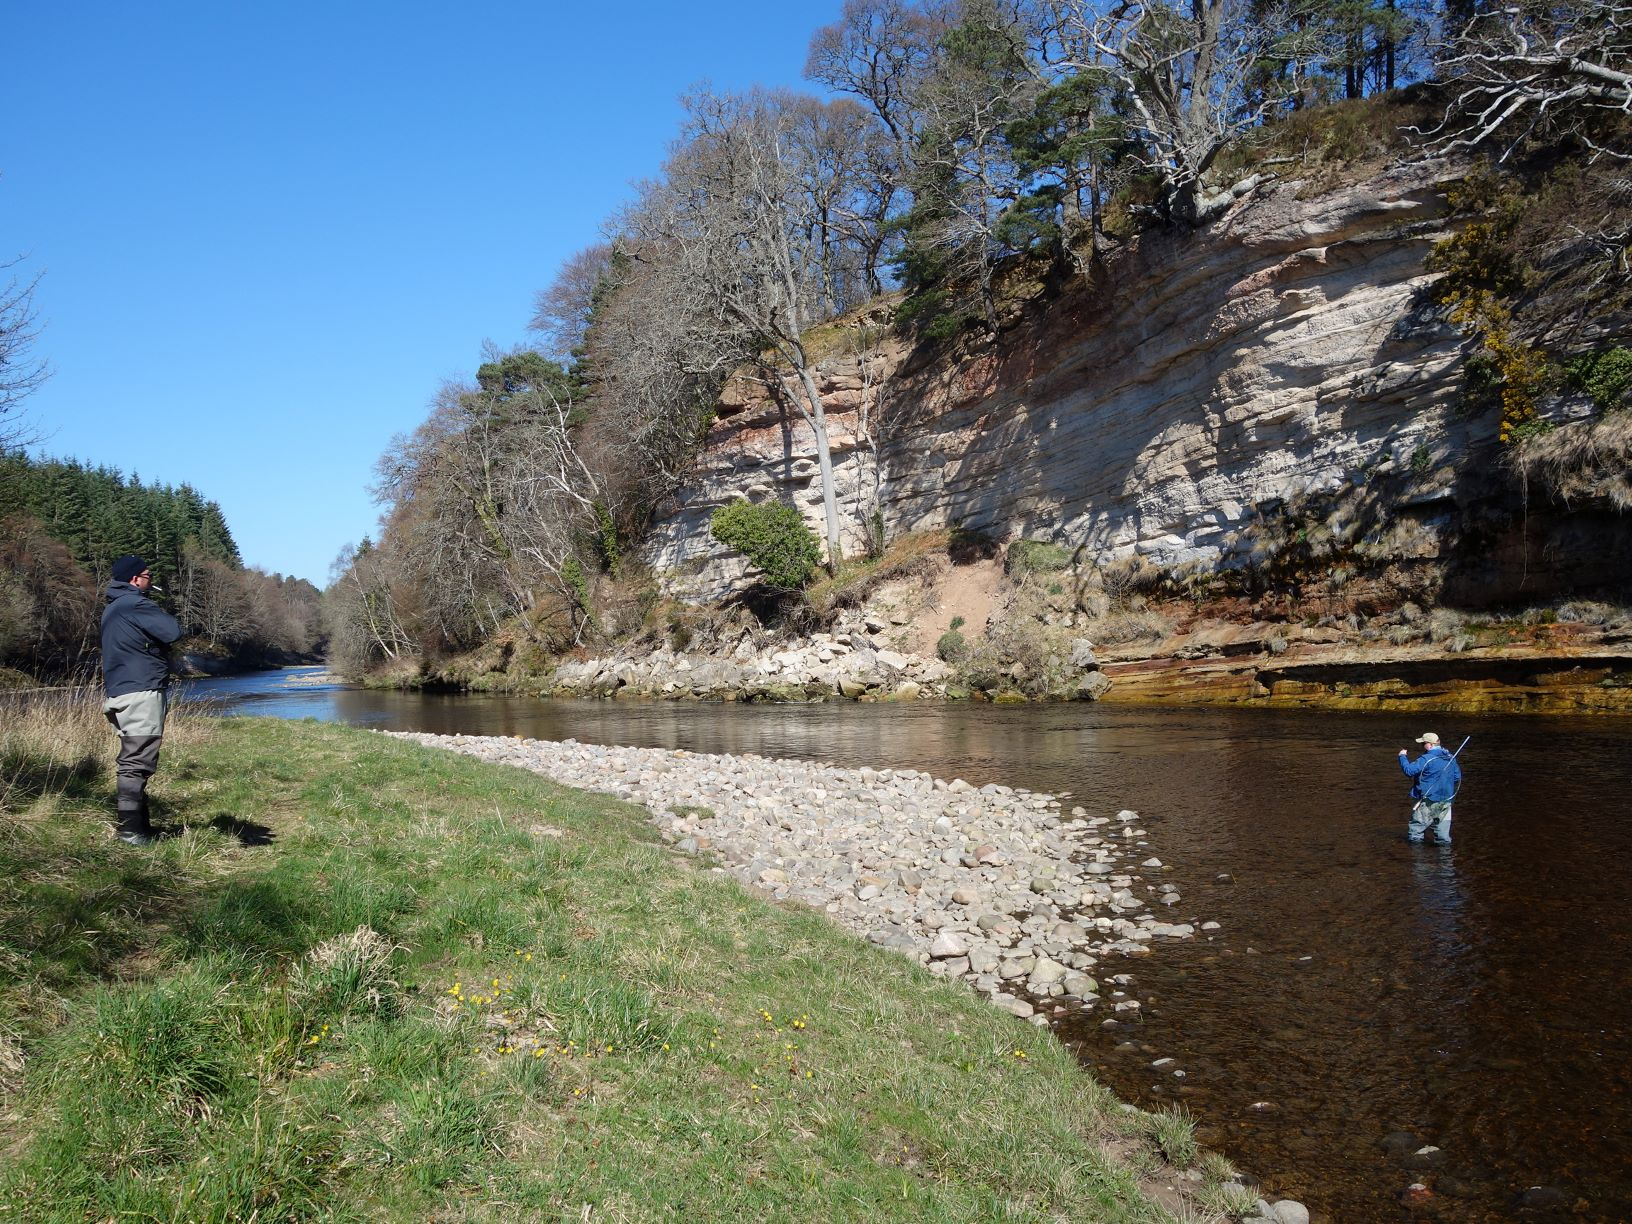 Scene of the lost net in St. John's Pool on the Meads of St. John Beat at Darnaway, River Findhorn